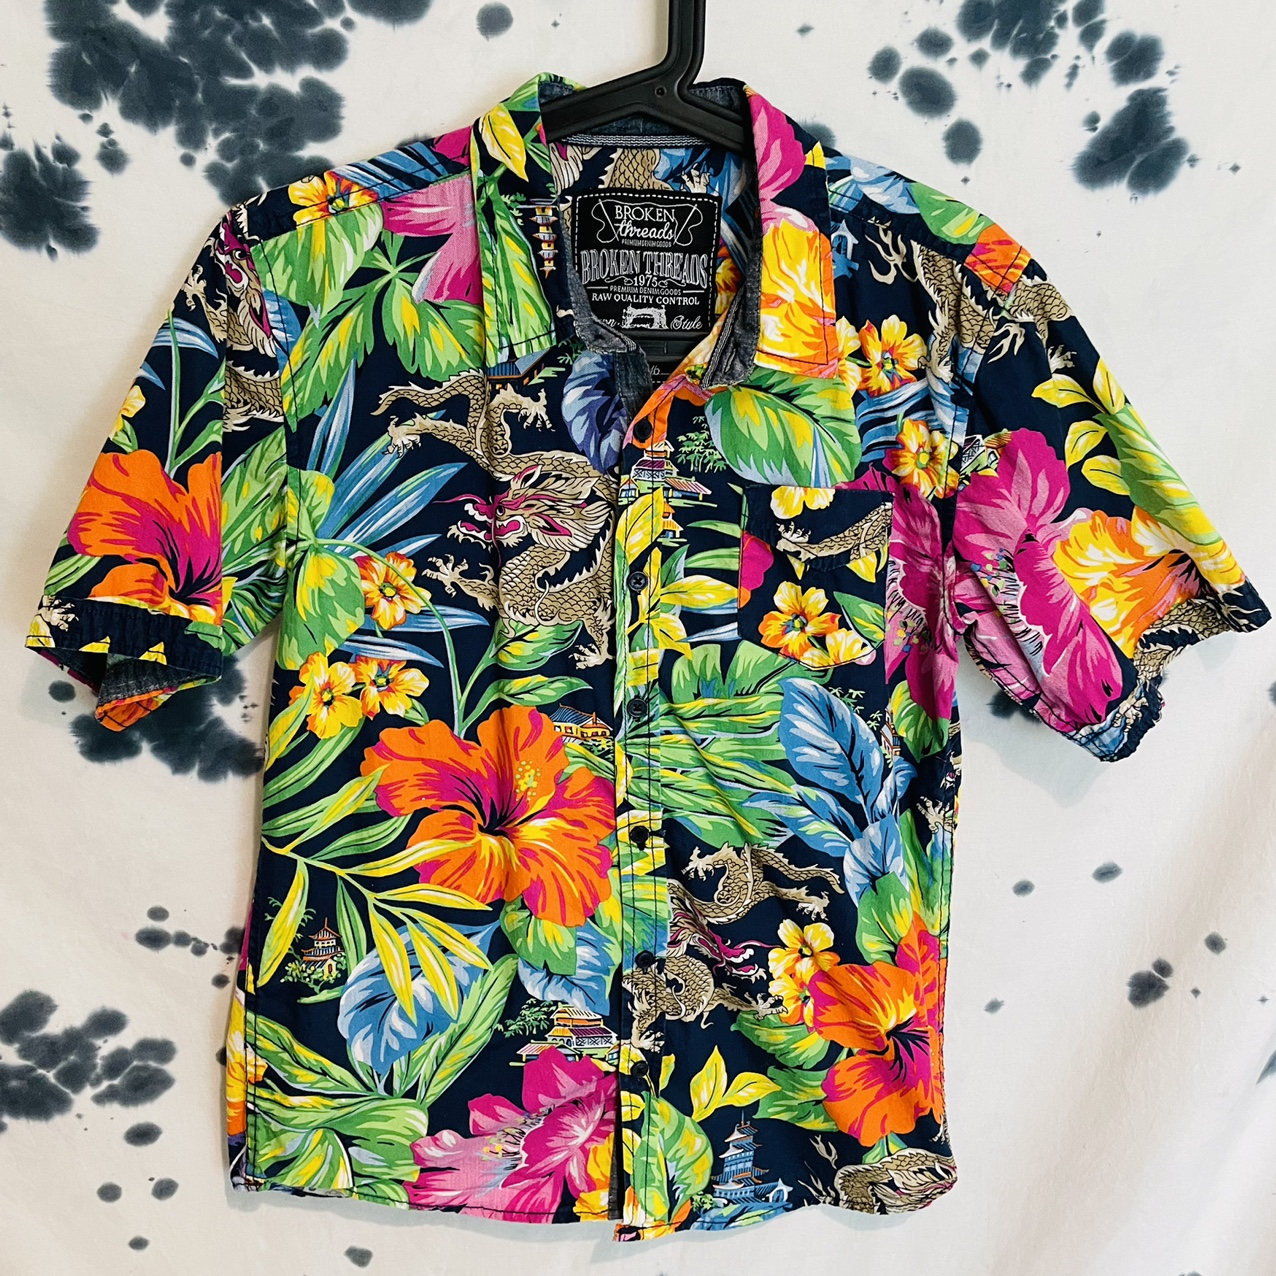 Product Image 1 - Broken Threads Floral/Dragon Button Up  This